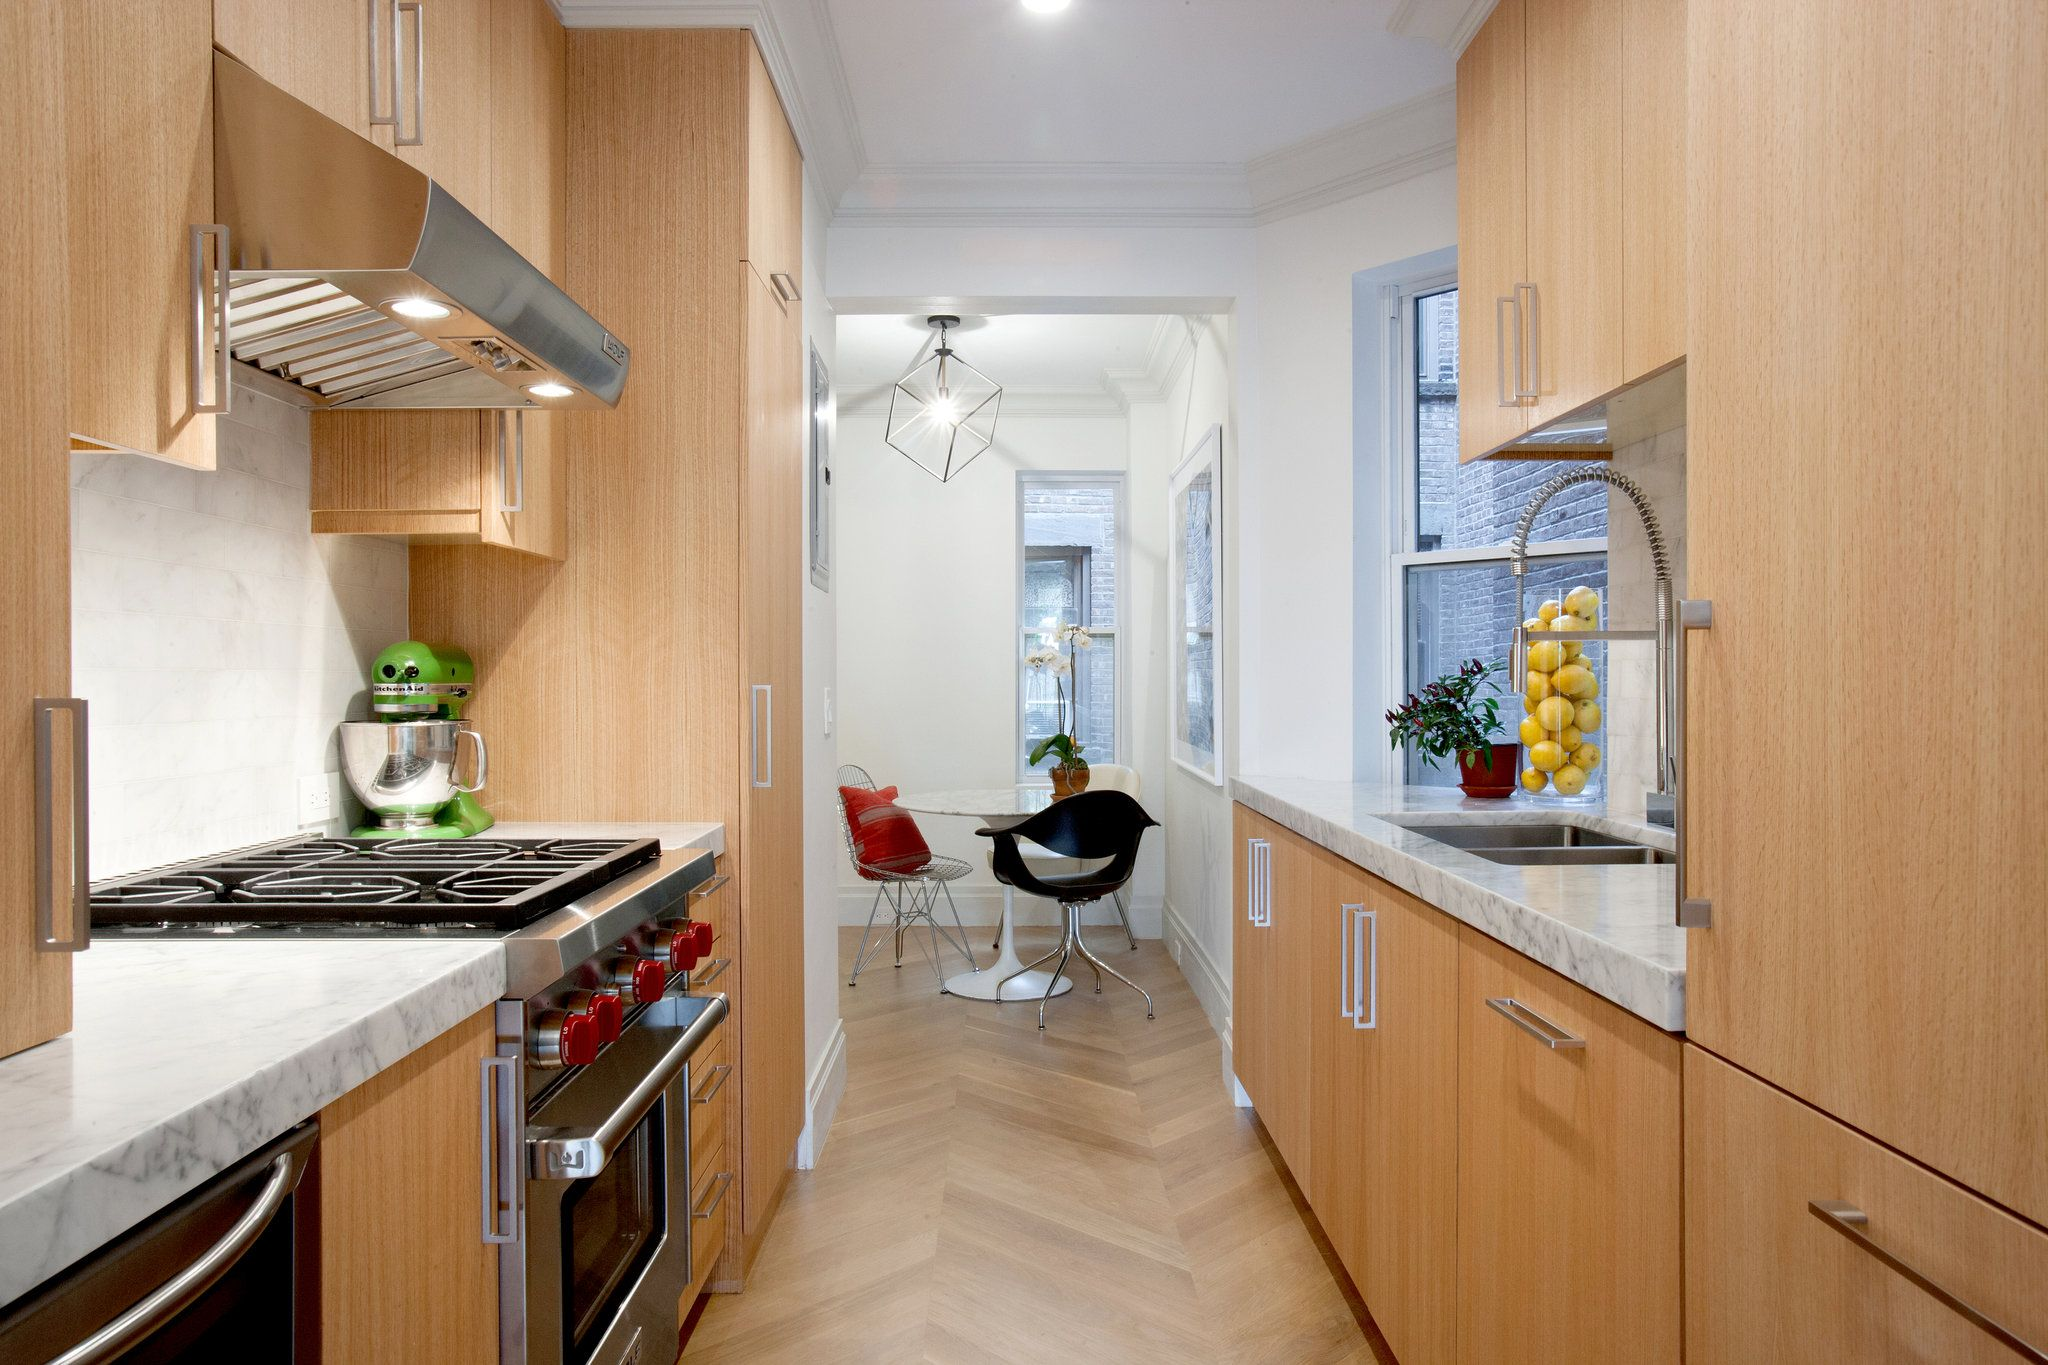 On the Market in New York City (With images) | New york ...